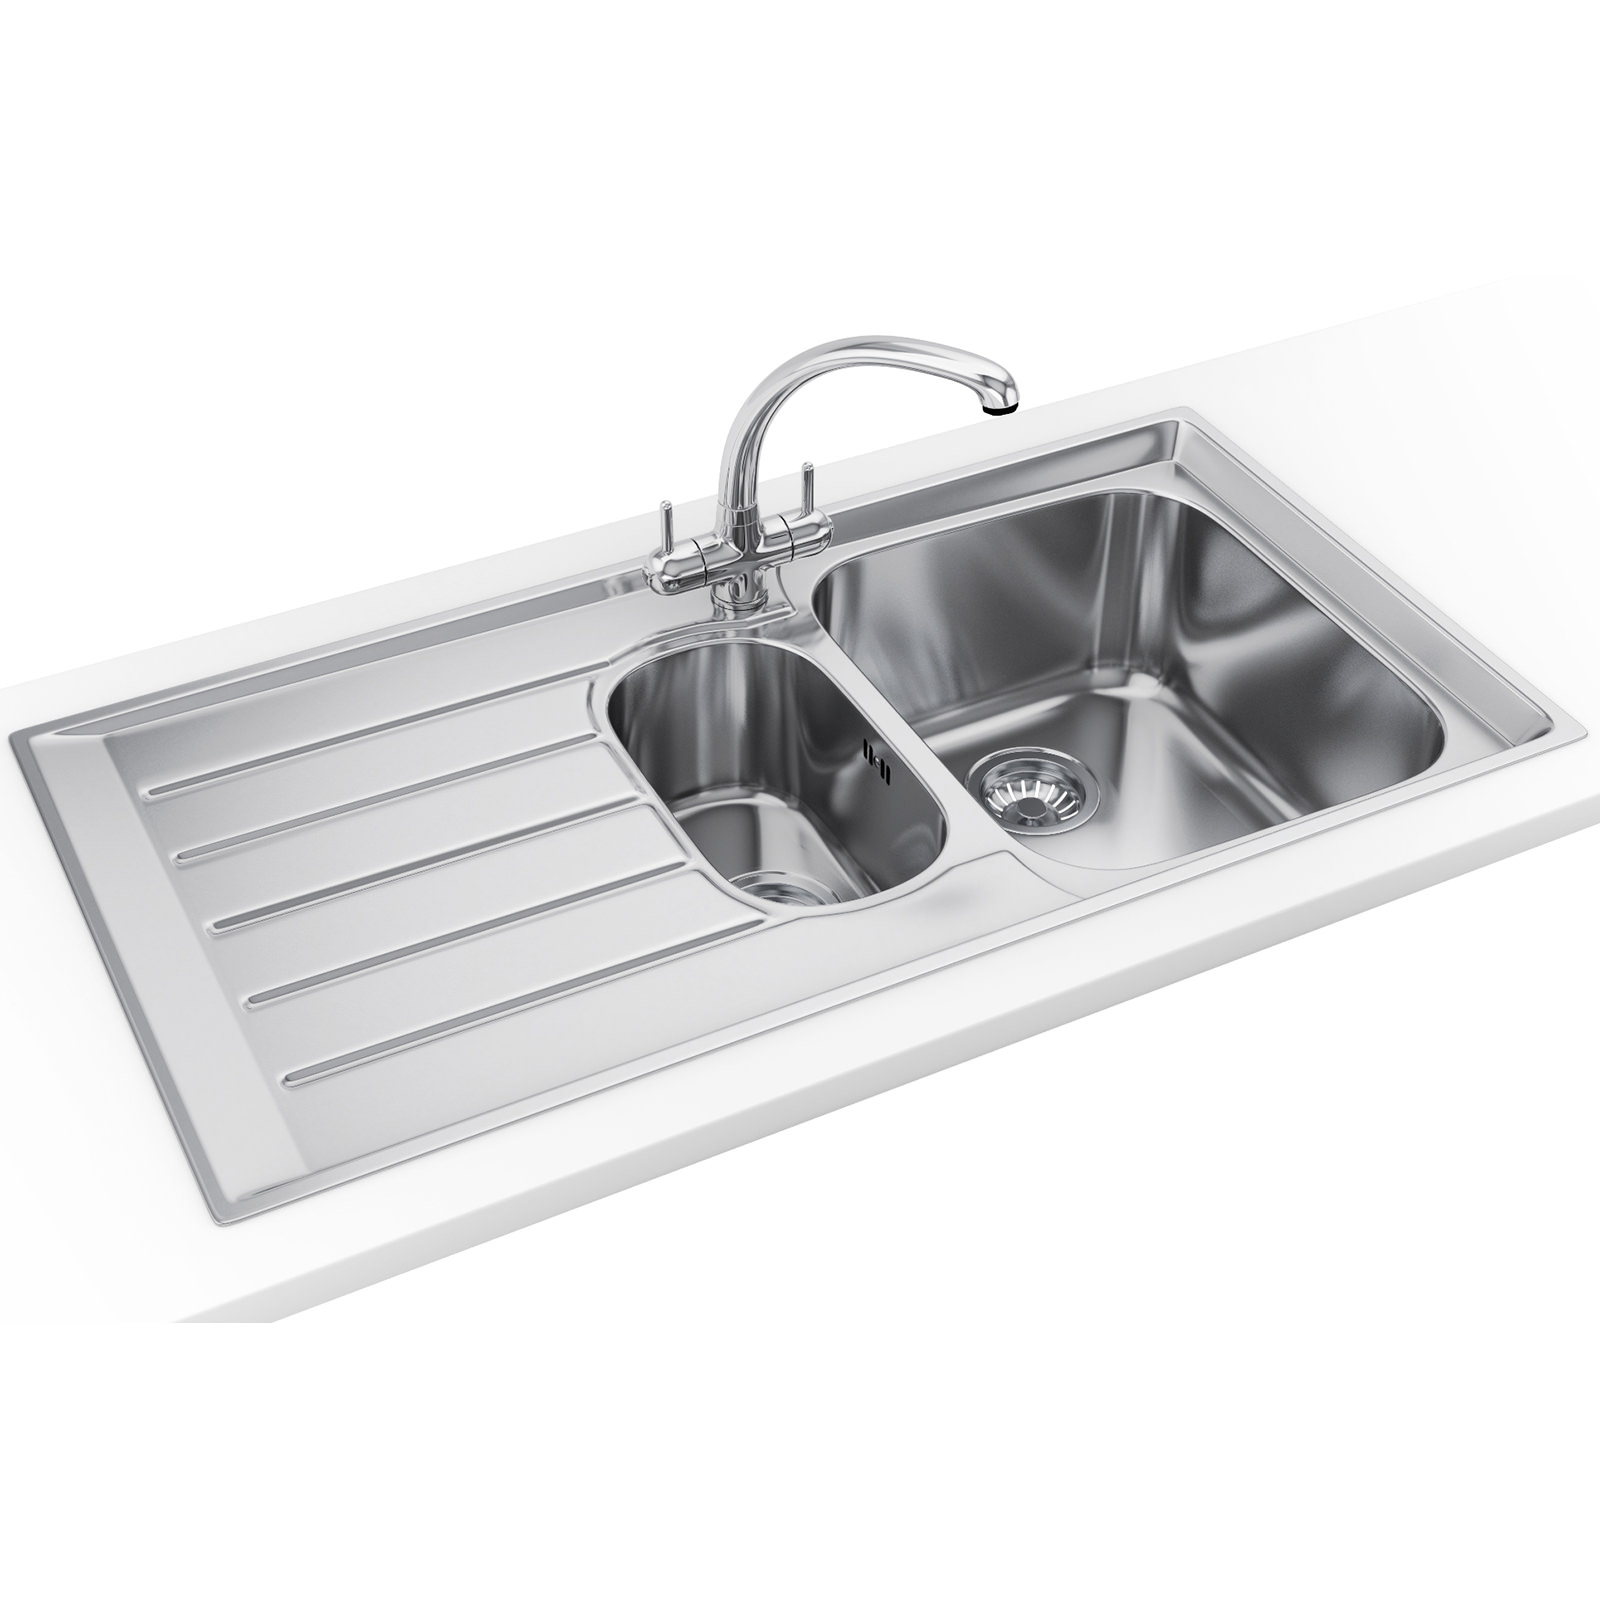 Franke Ss Sinks : Franke Neptune Propack NEX 251 Stainless Steel Kitchen Sink And Tap